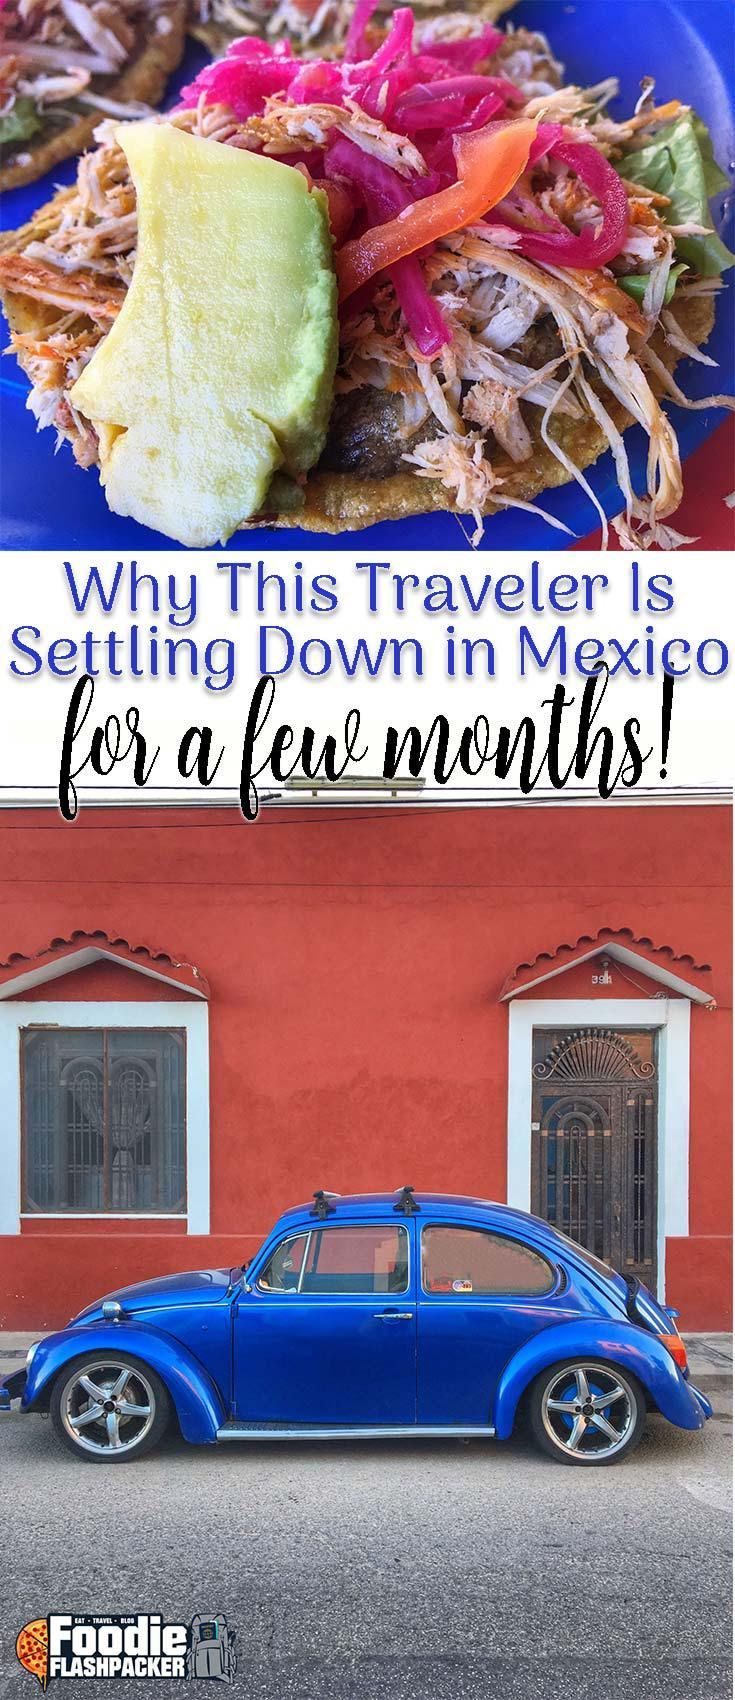 I Ve Moved To Mexico Mexico Mexico Travel Travel Experts